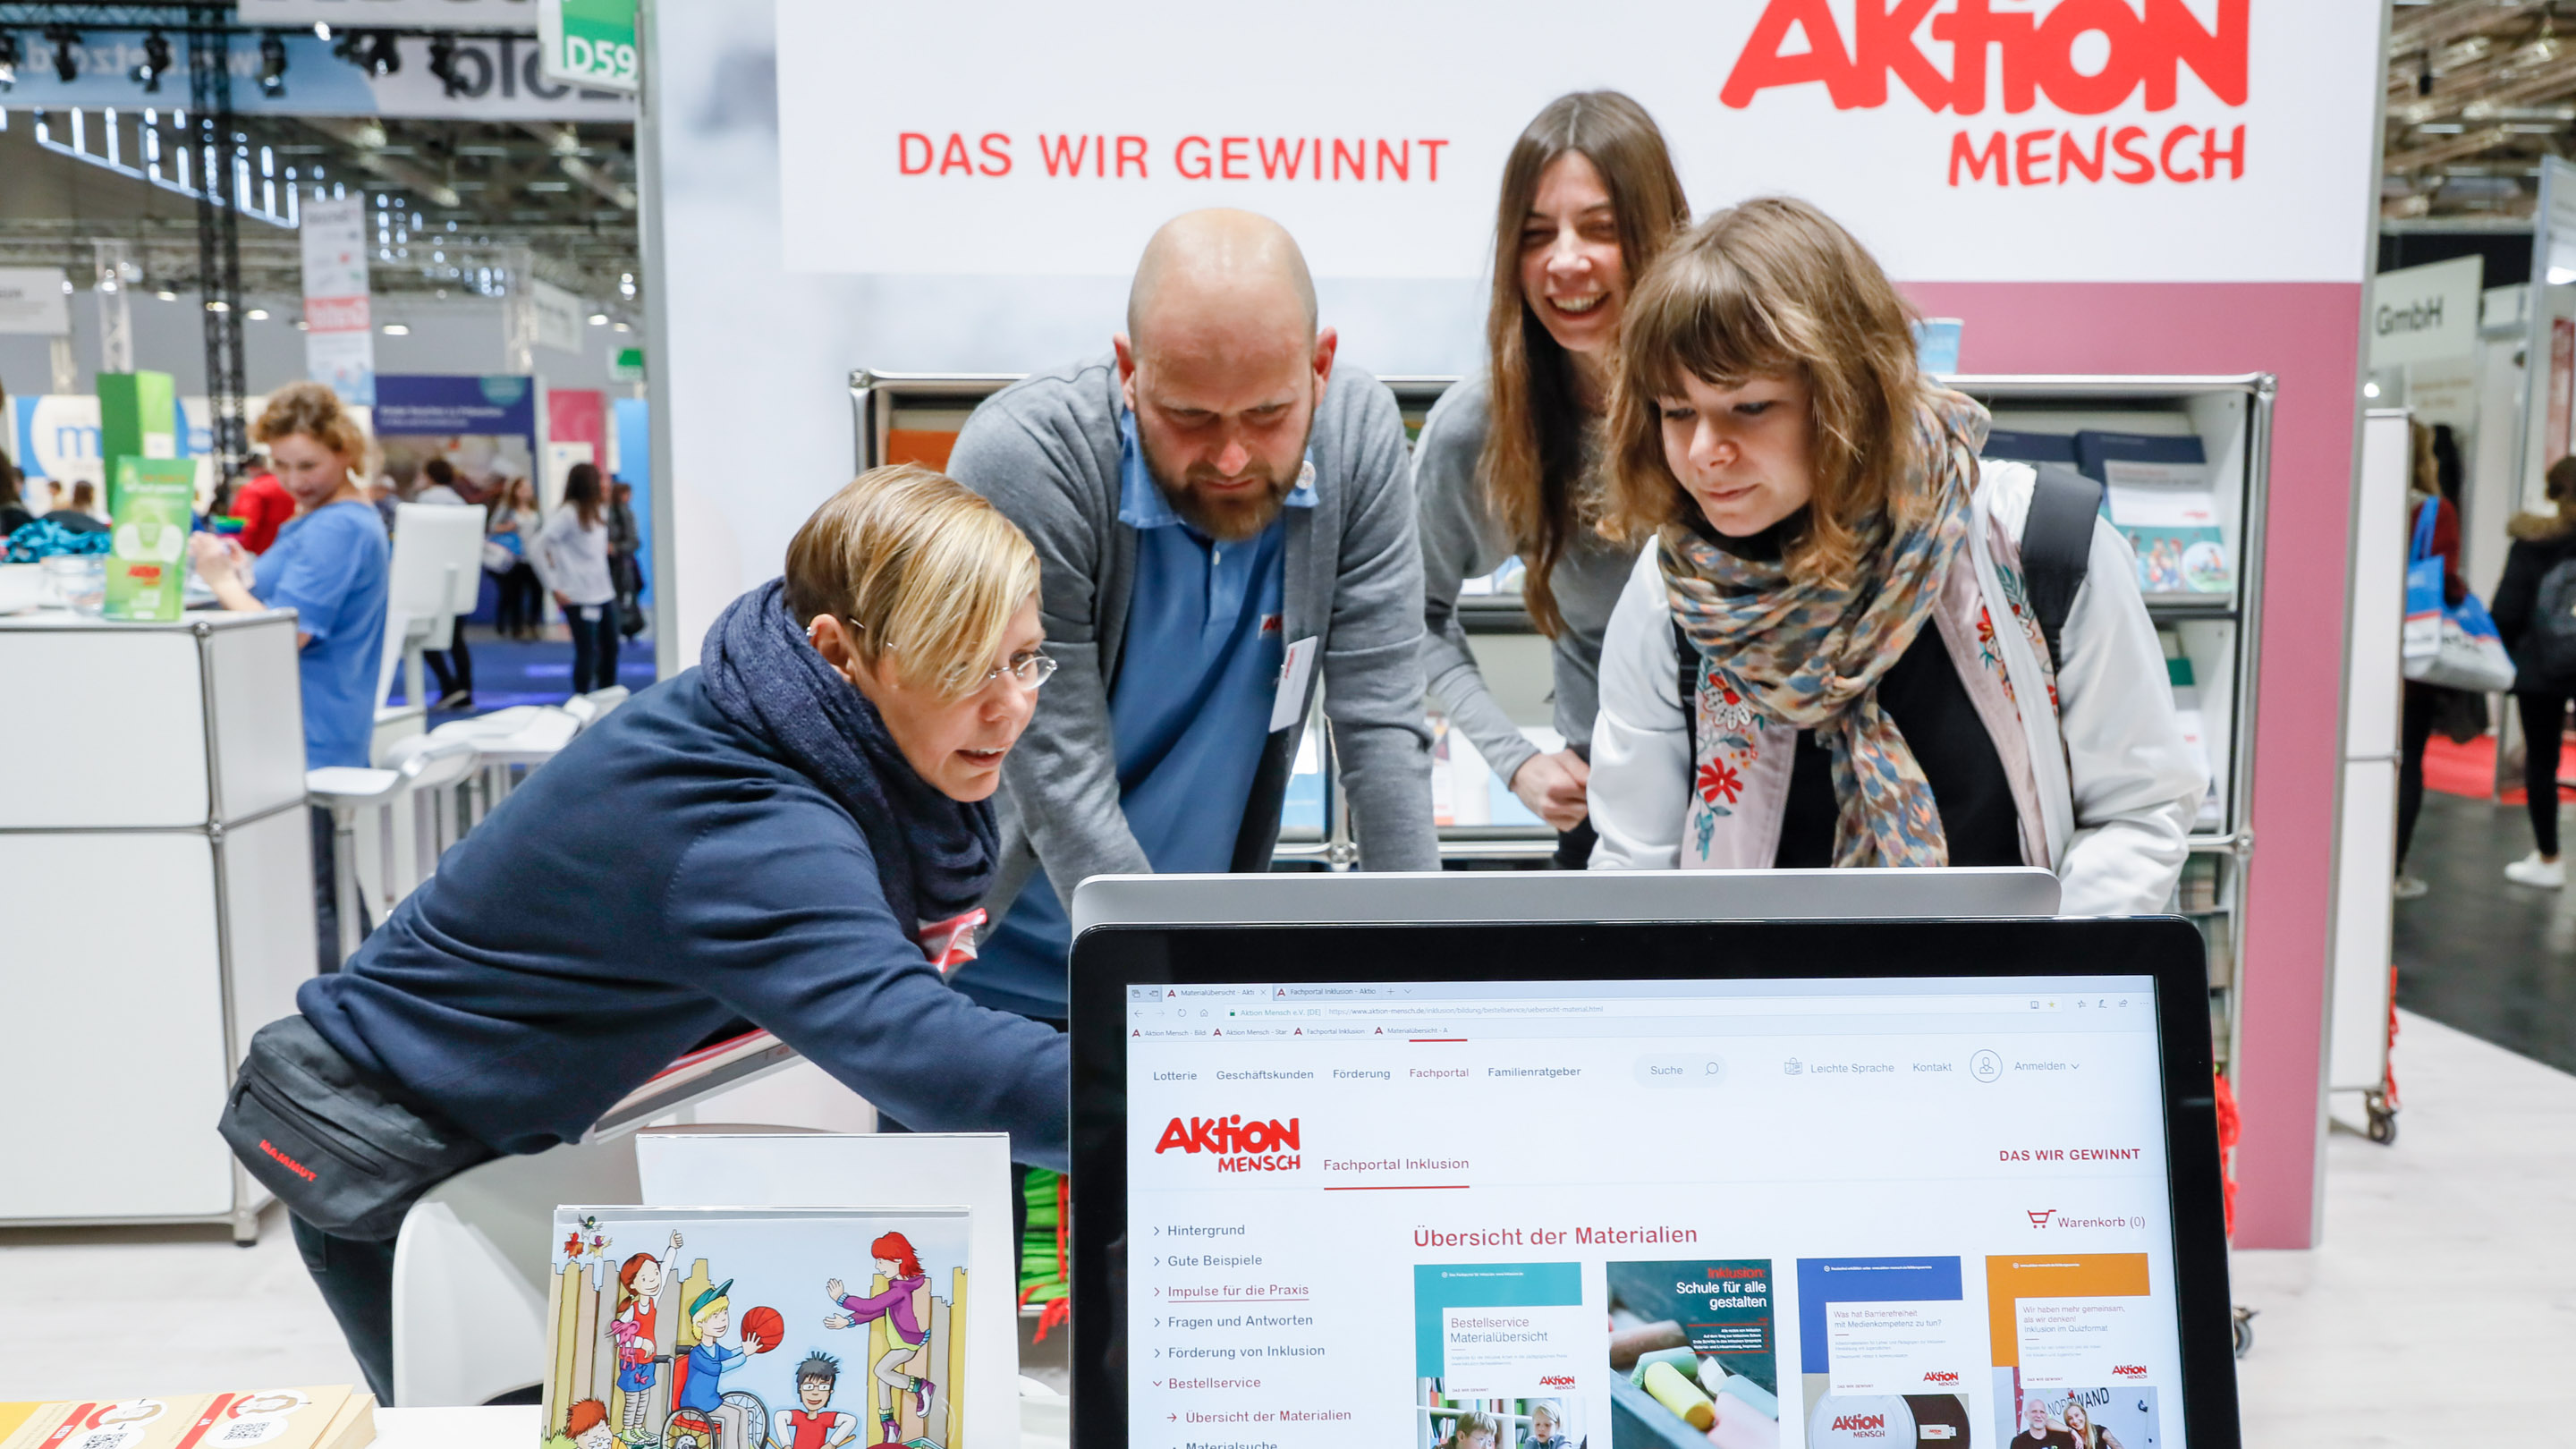 Stand: Aktion Mensch, Halle 7, didacta 2019